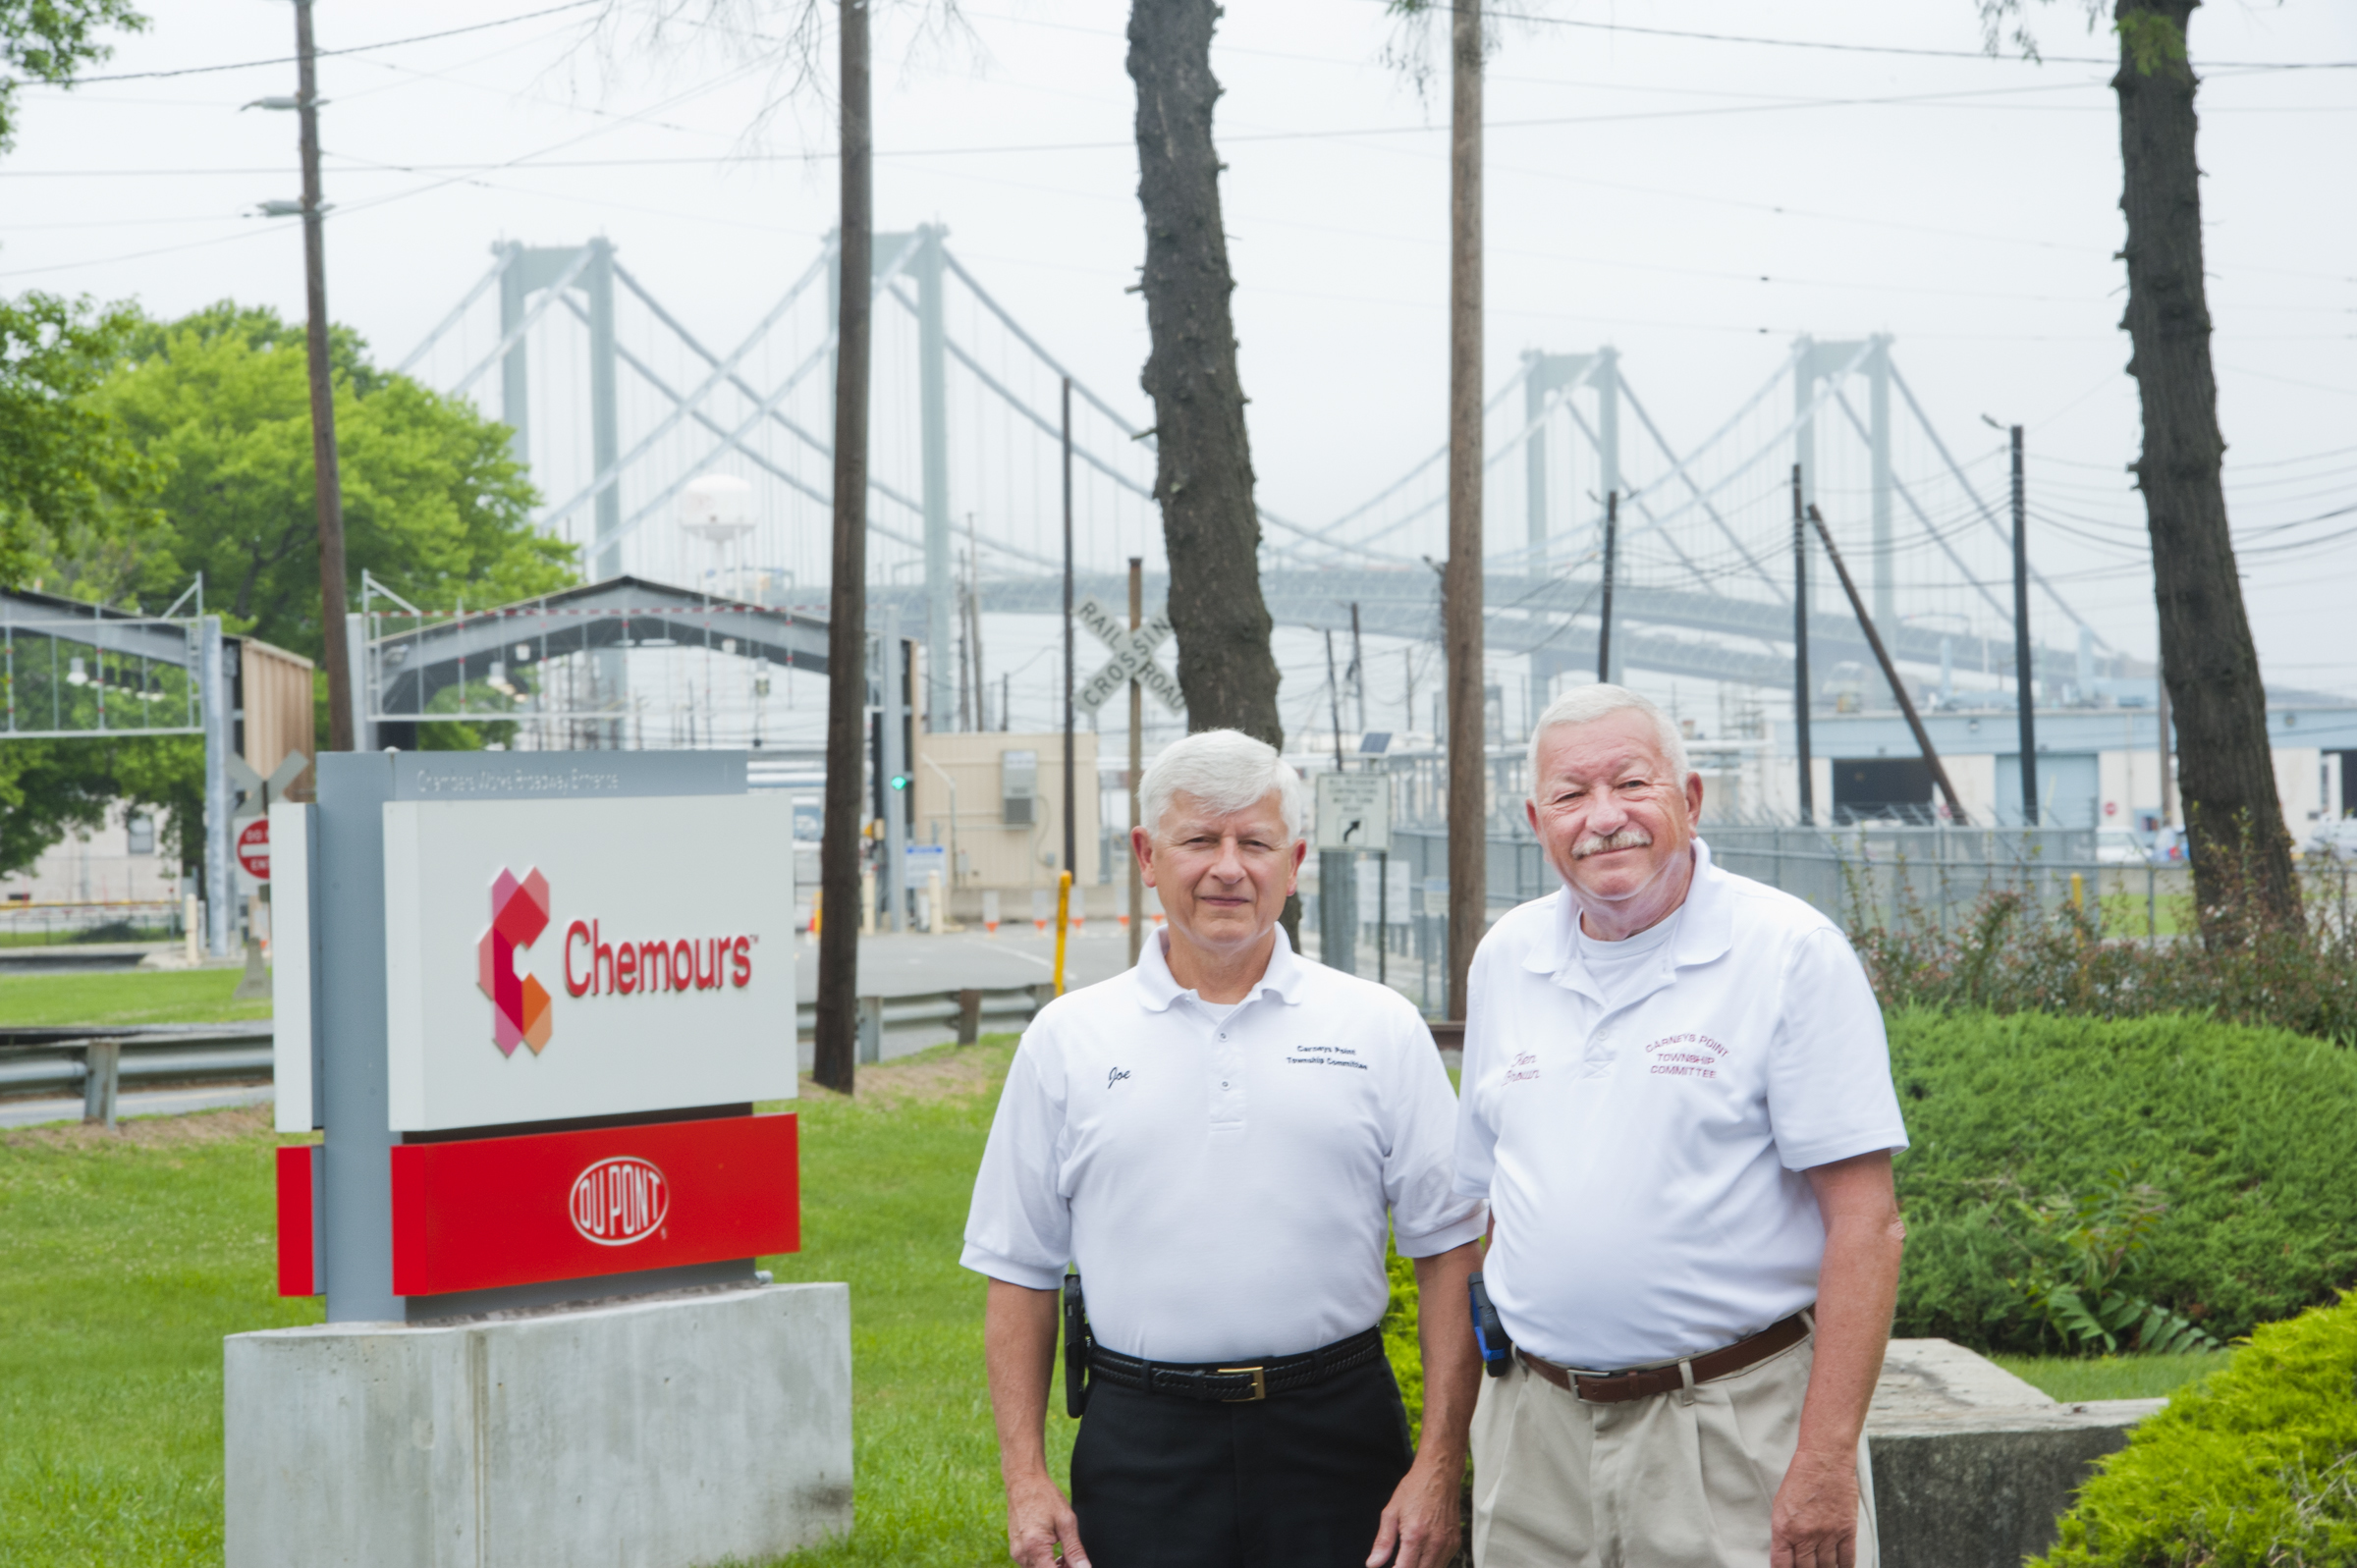 Joseph Racite, Mayor of Carney´s Point (left) and township committee member Ken Brown stand out front of the Chemours plant.